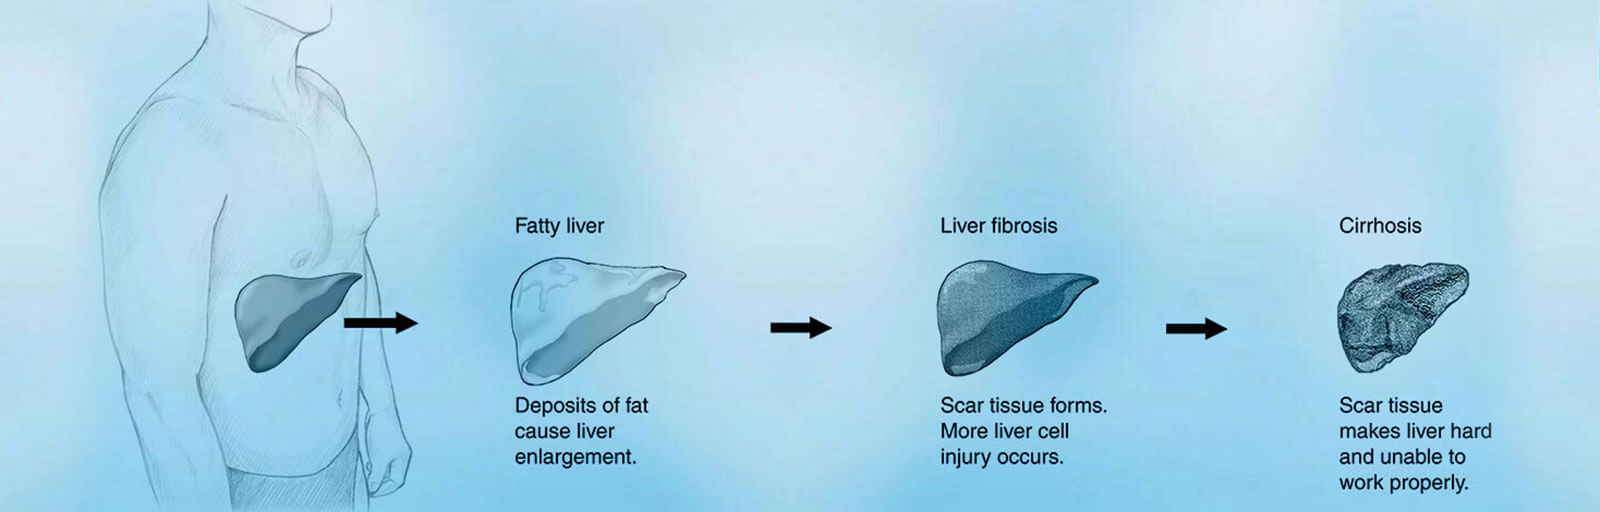 Cirrhosis Liver Stages